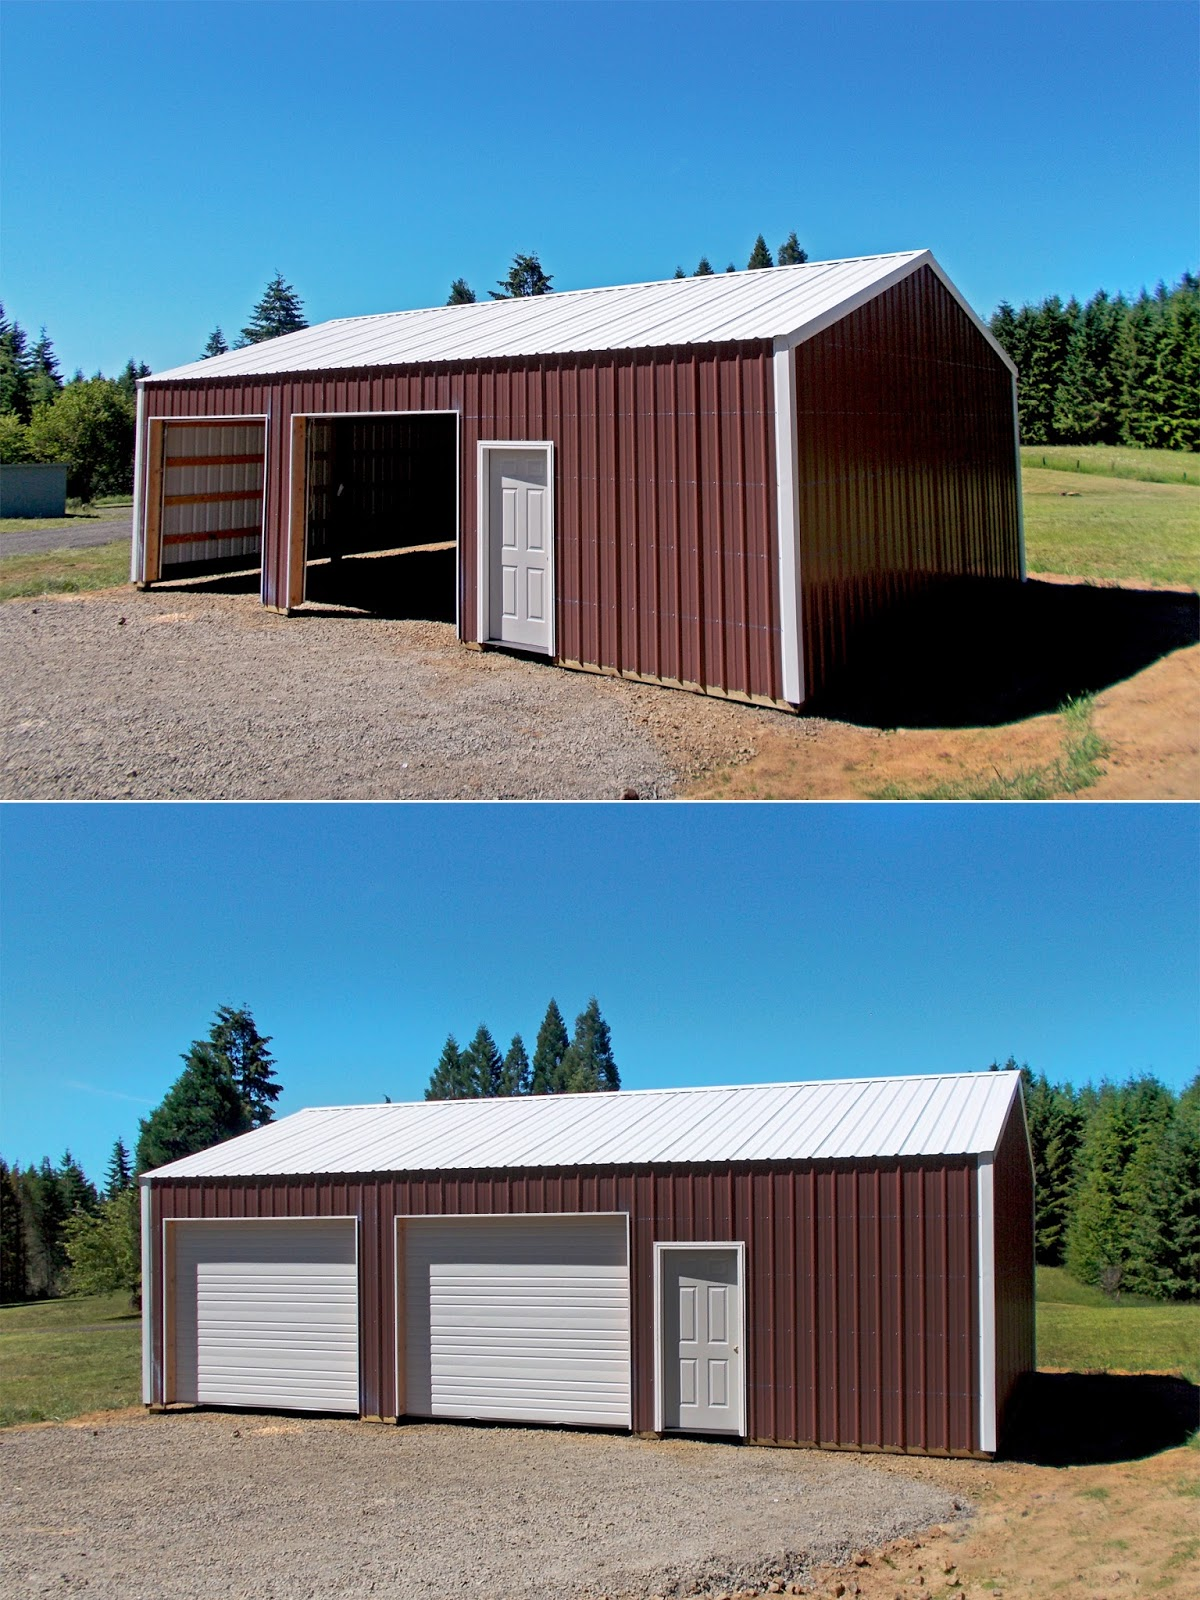 24 39 x 36 39 x 10 39 pole building with 10 39 x 8 39 commercial for 24x36 pole building